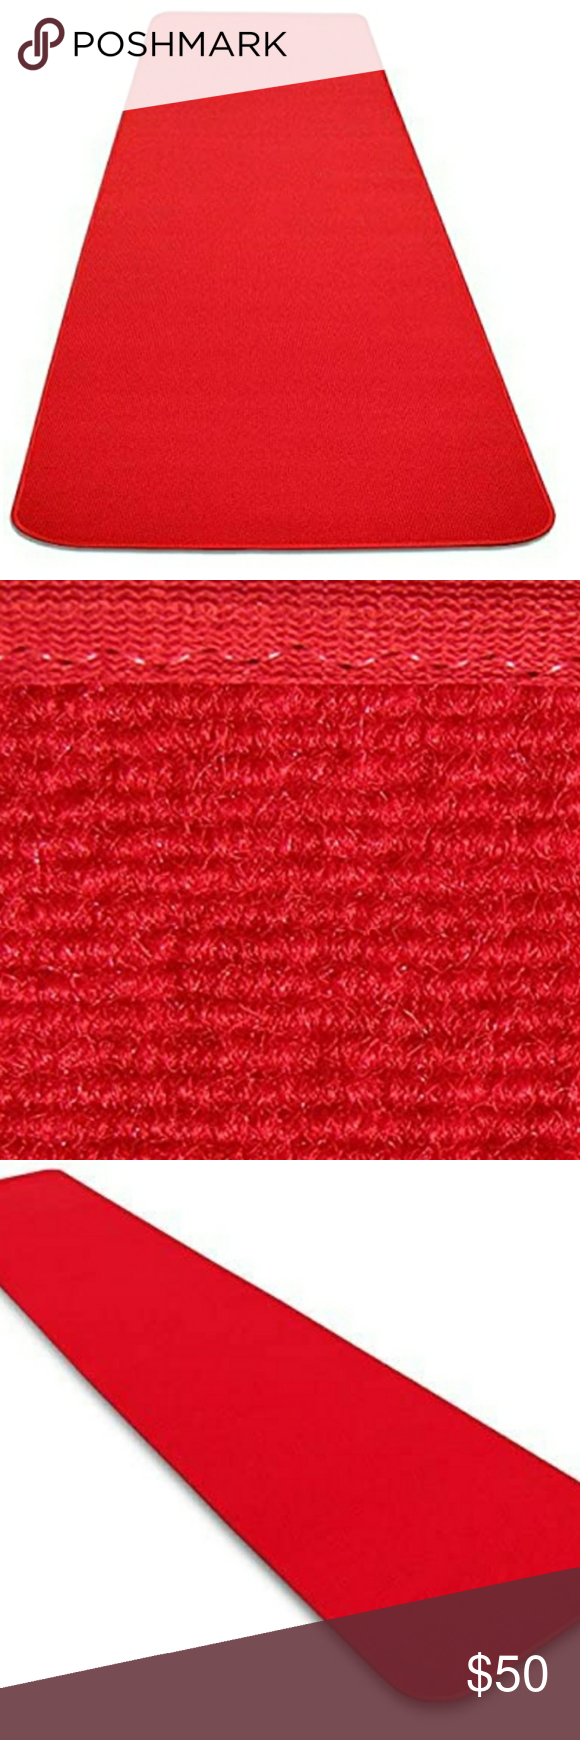 Red Carpet Aisle Runner 3ft X 10ft Red Carpet Aisle Runner Outdoor Carpet Indoor Outdoor Carpet